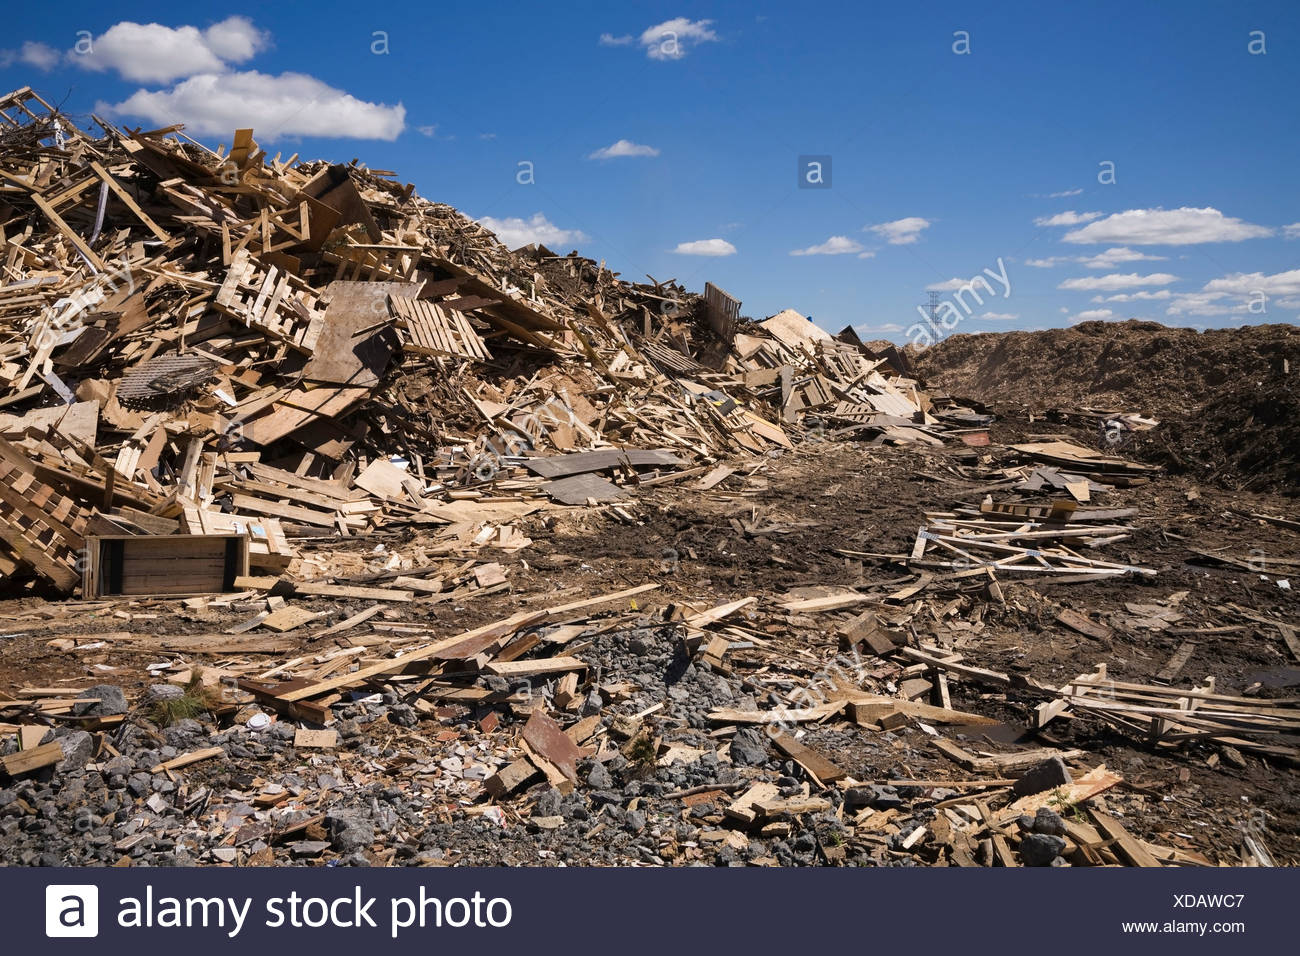 Pile of discarded wood at waste management site - Stock Image